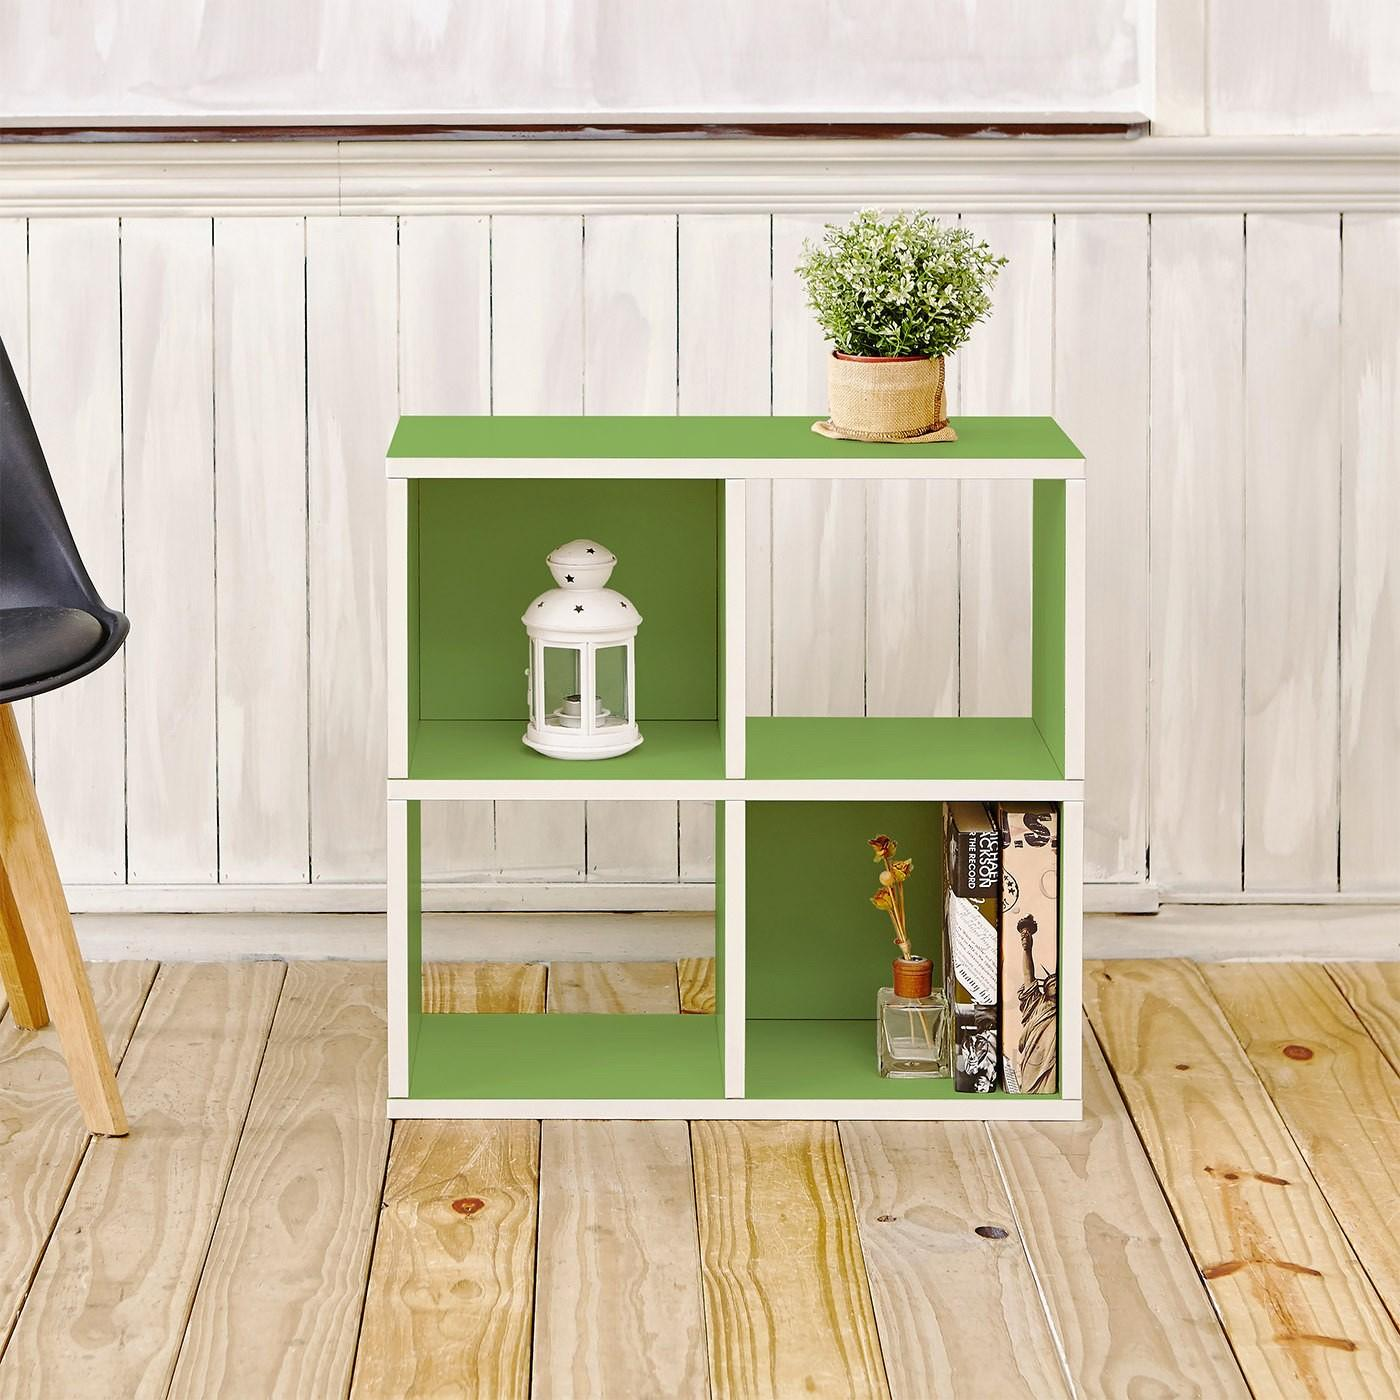 Decor Items Featuring Pantone 2017 Color Year